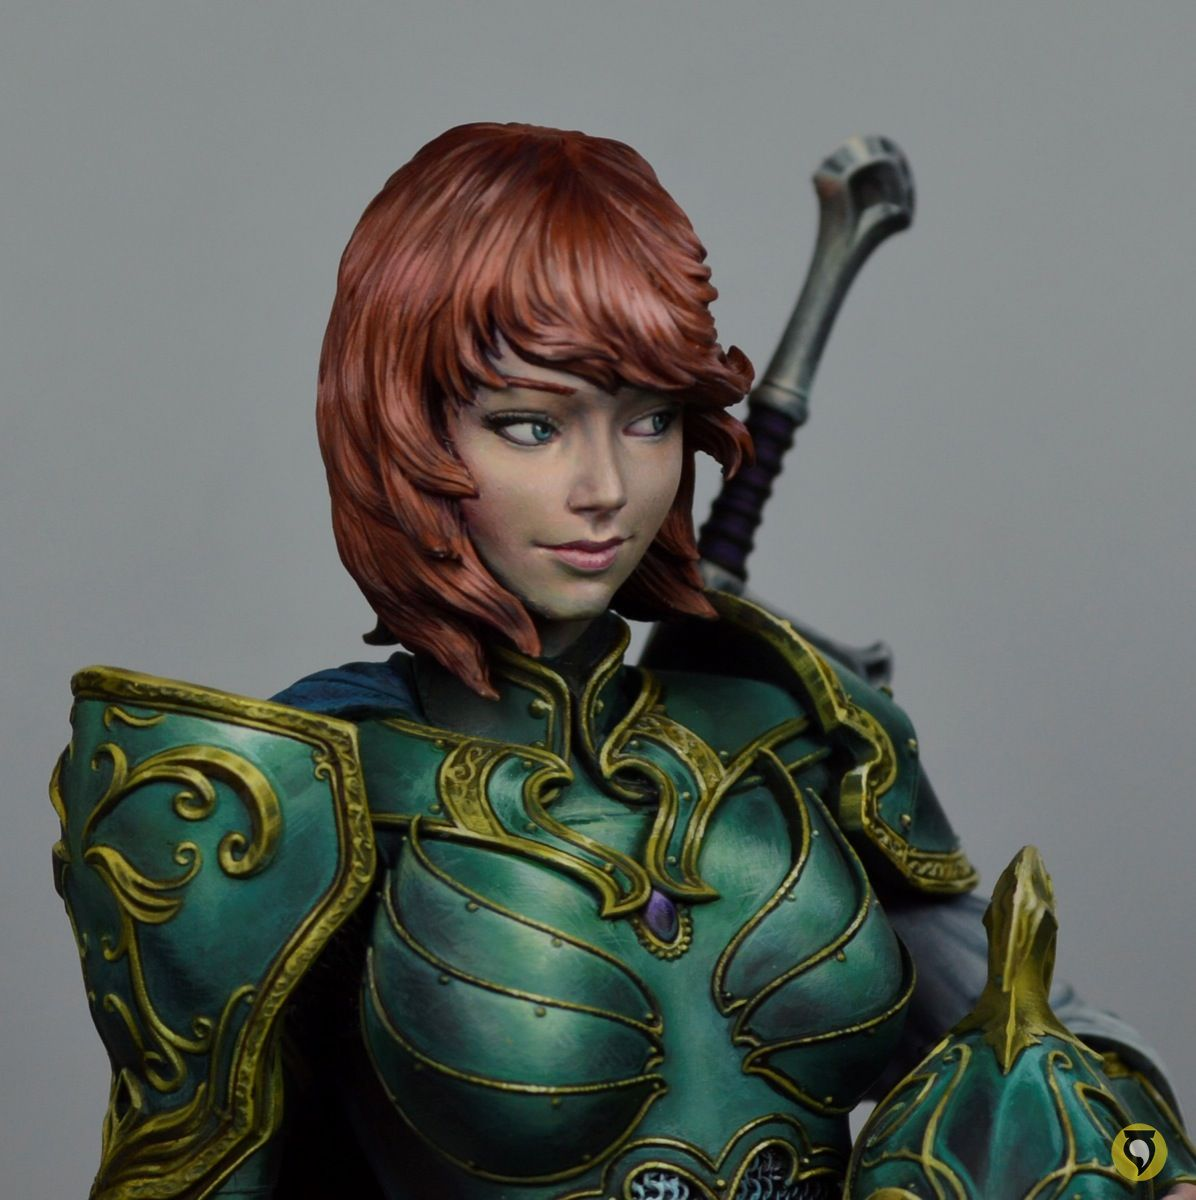 excelsy-bust-marc-masclans-article-tutorial-draconia-18